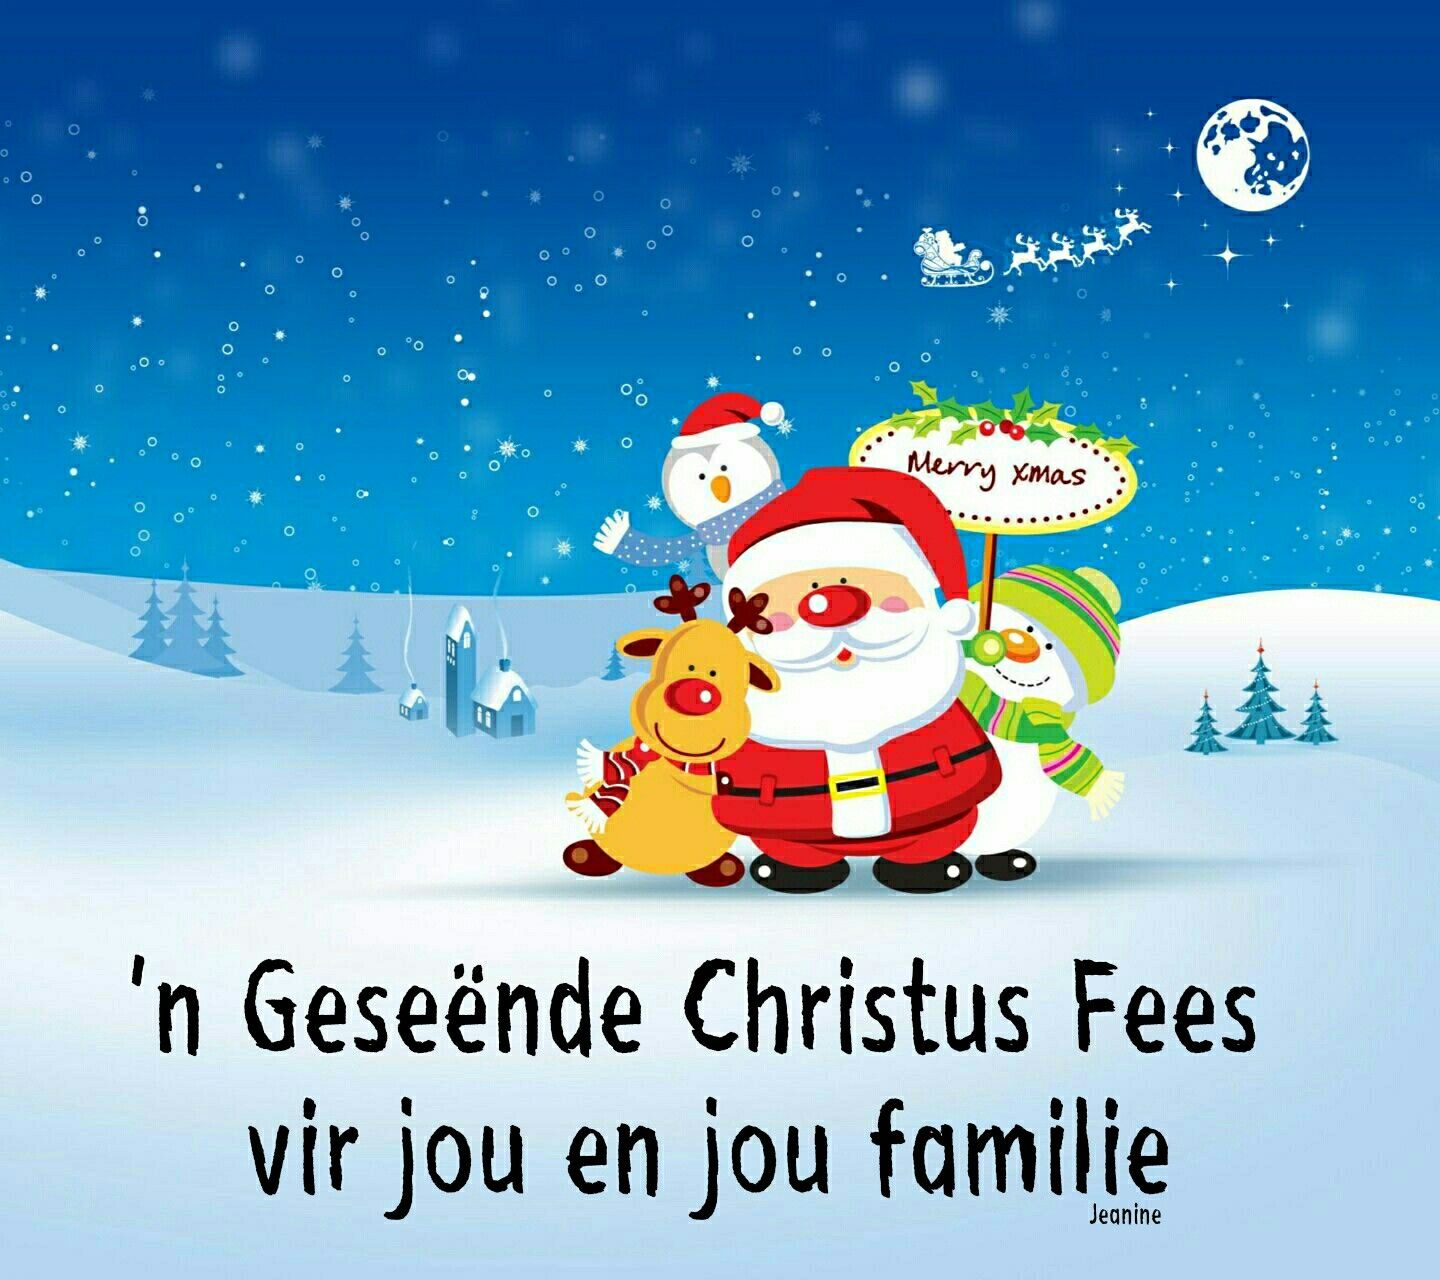 Pin by jeanine ackermann on afrikaansboeremeisie pinterest christmas greeting cards christmas greetings christmas mood afrikaans christmas wishes m4hsunfo